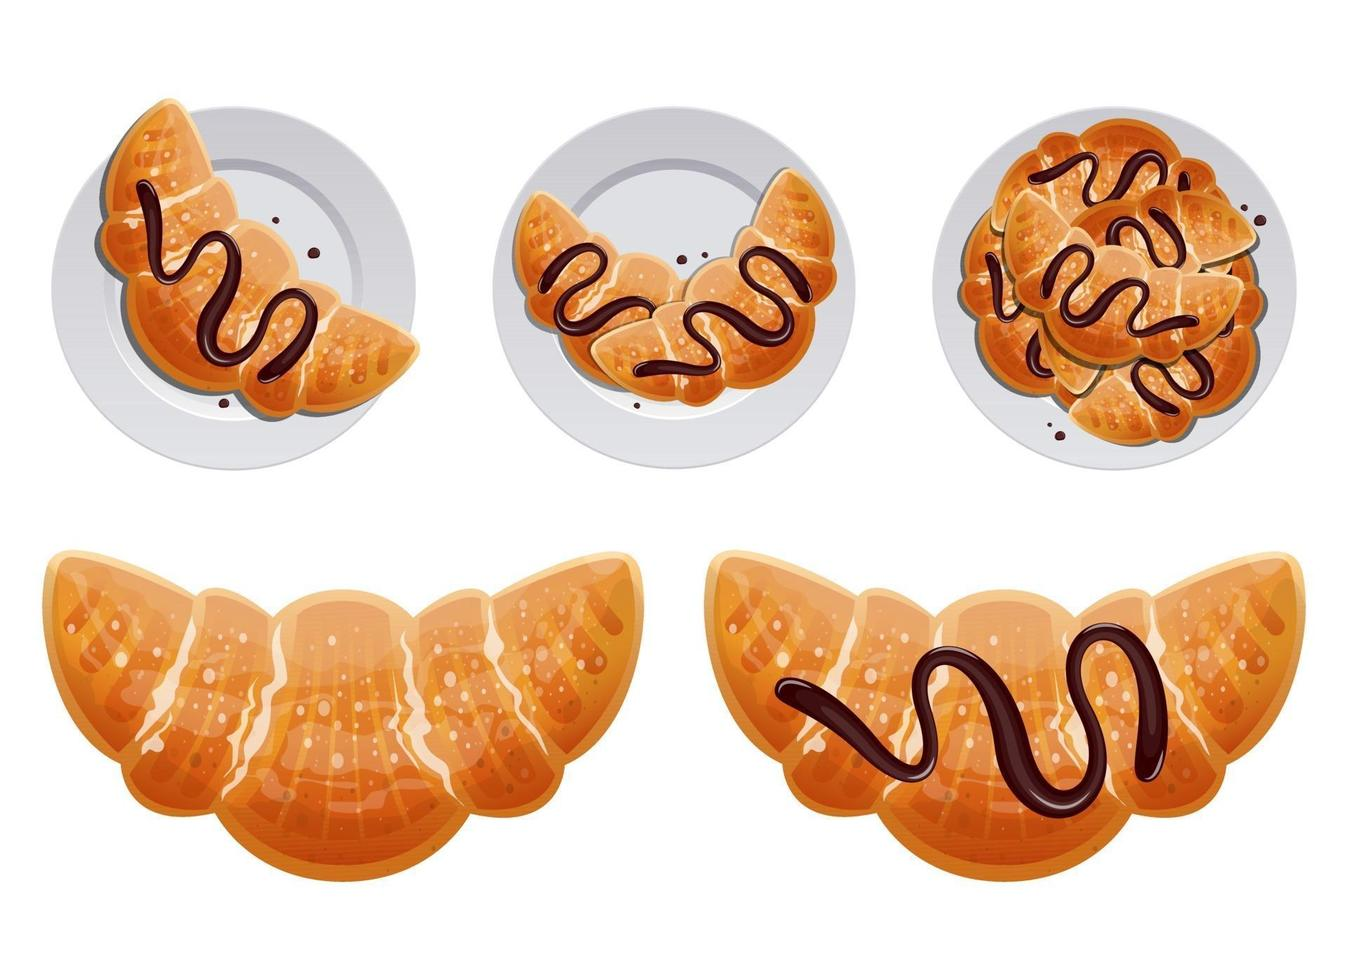 Traditional french croissant vector design illustration set isolated on white background